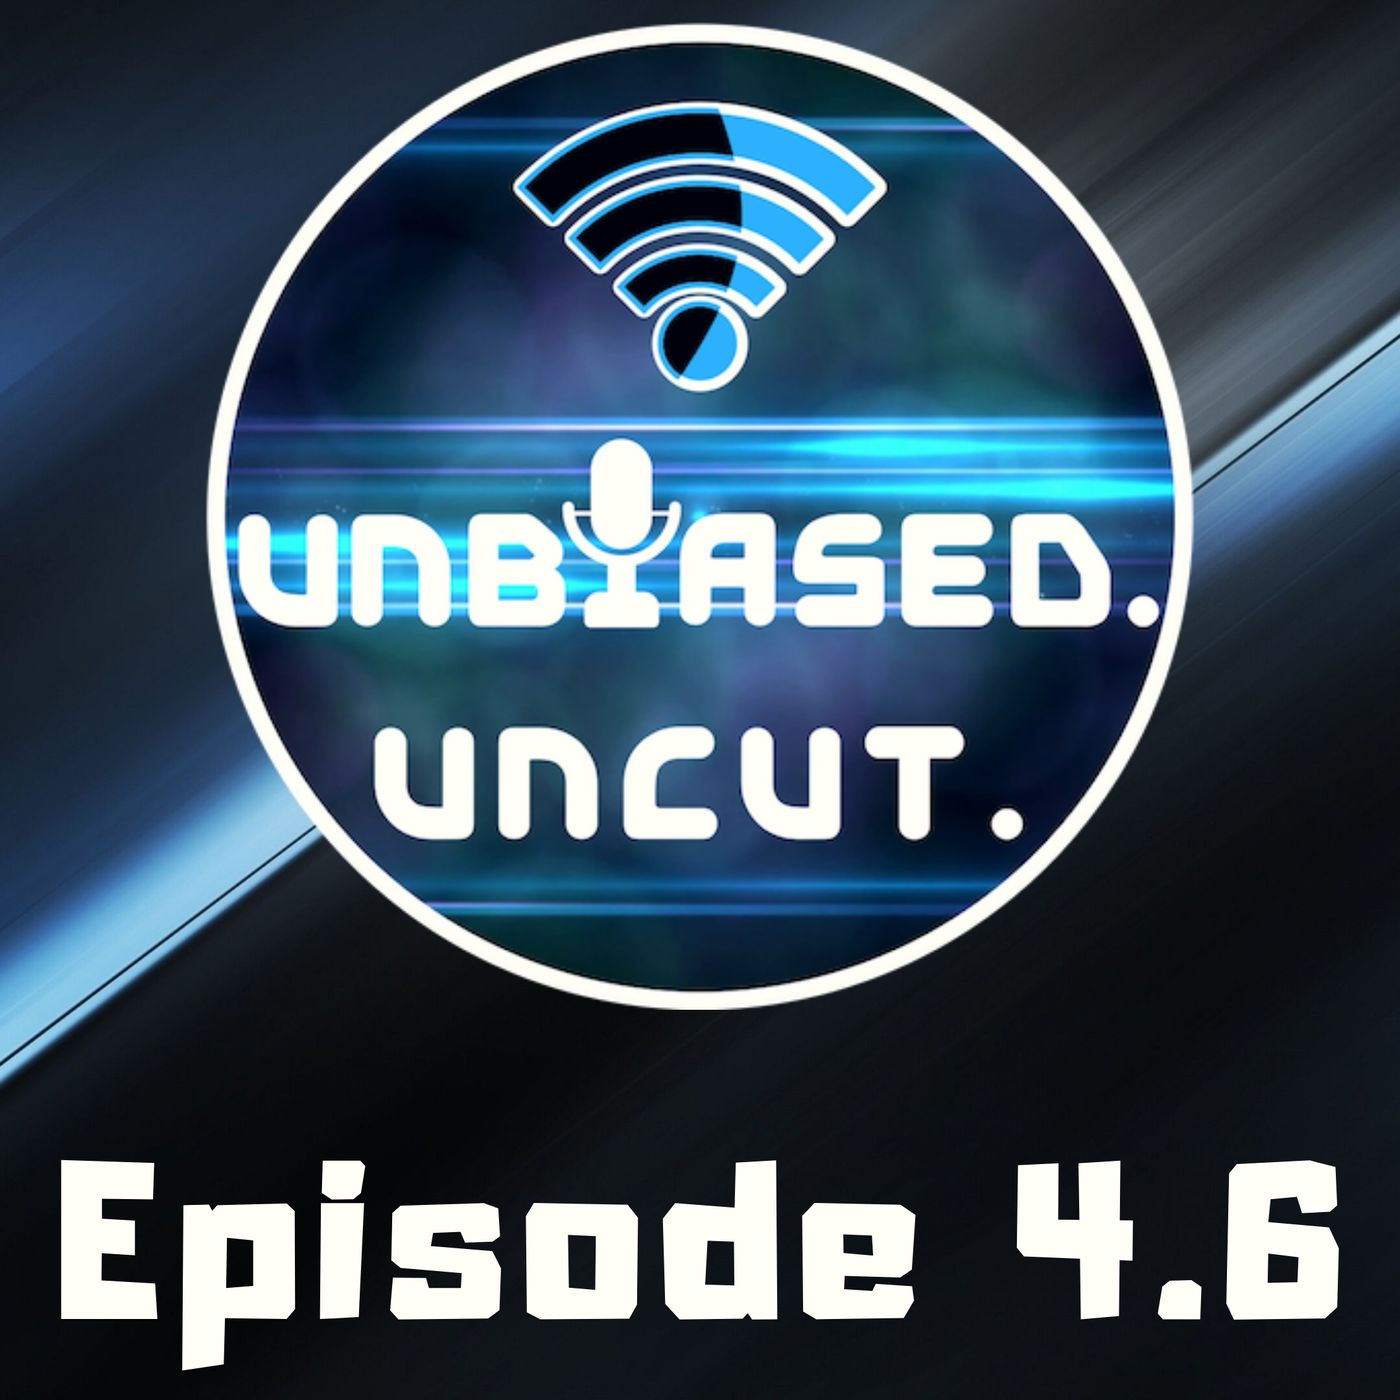 Episode 4.6: The World of AI